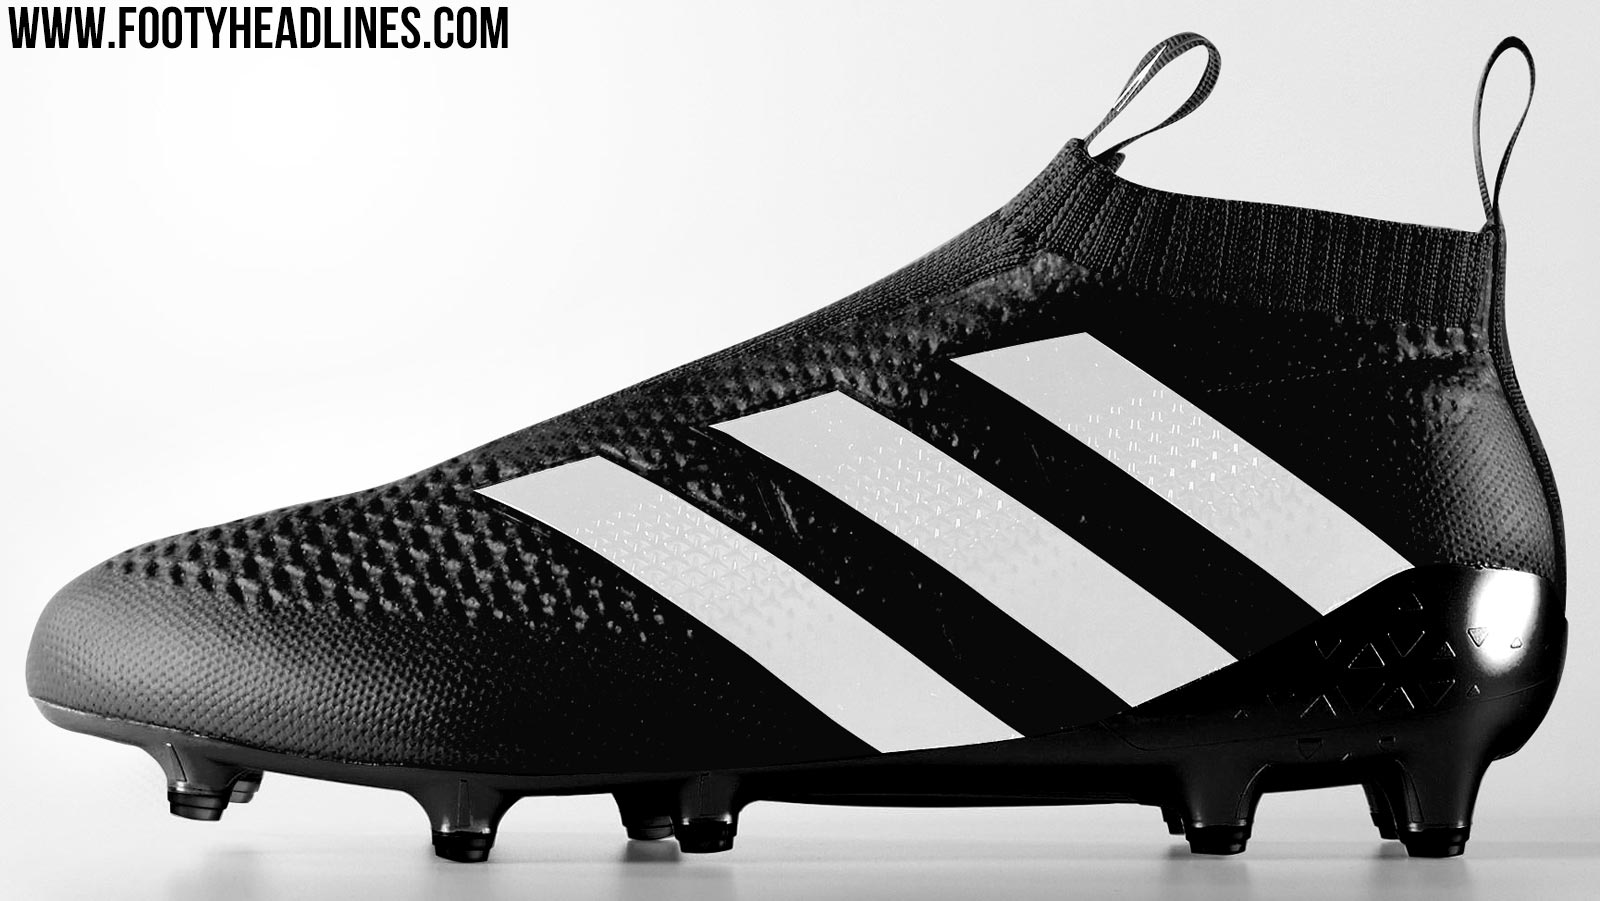 new product 83622 1d39b 10 Stunning Adidas Ace 16+ PureControl Colorway Concepts ...